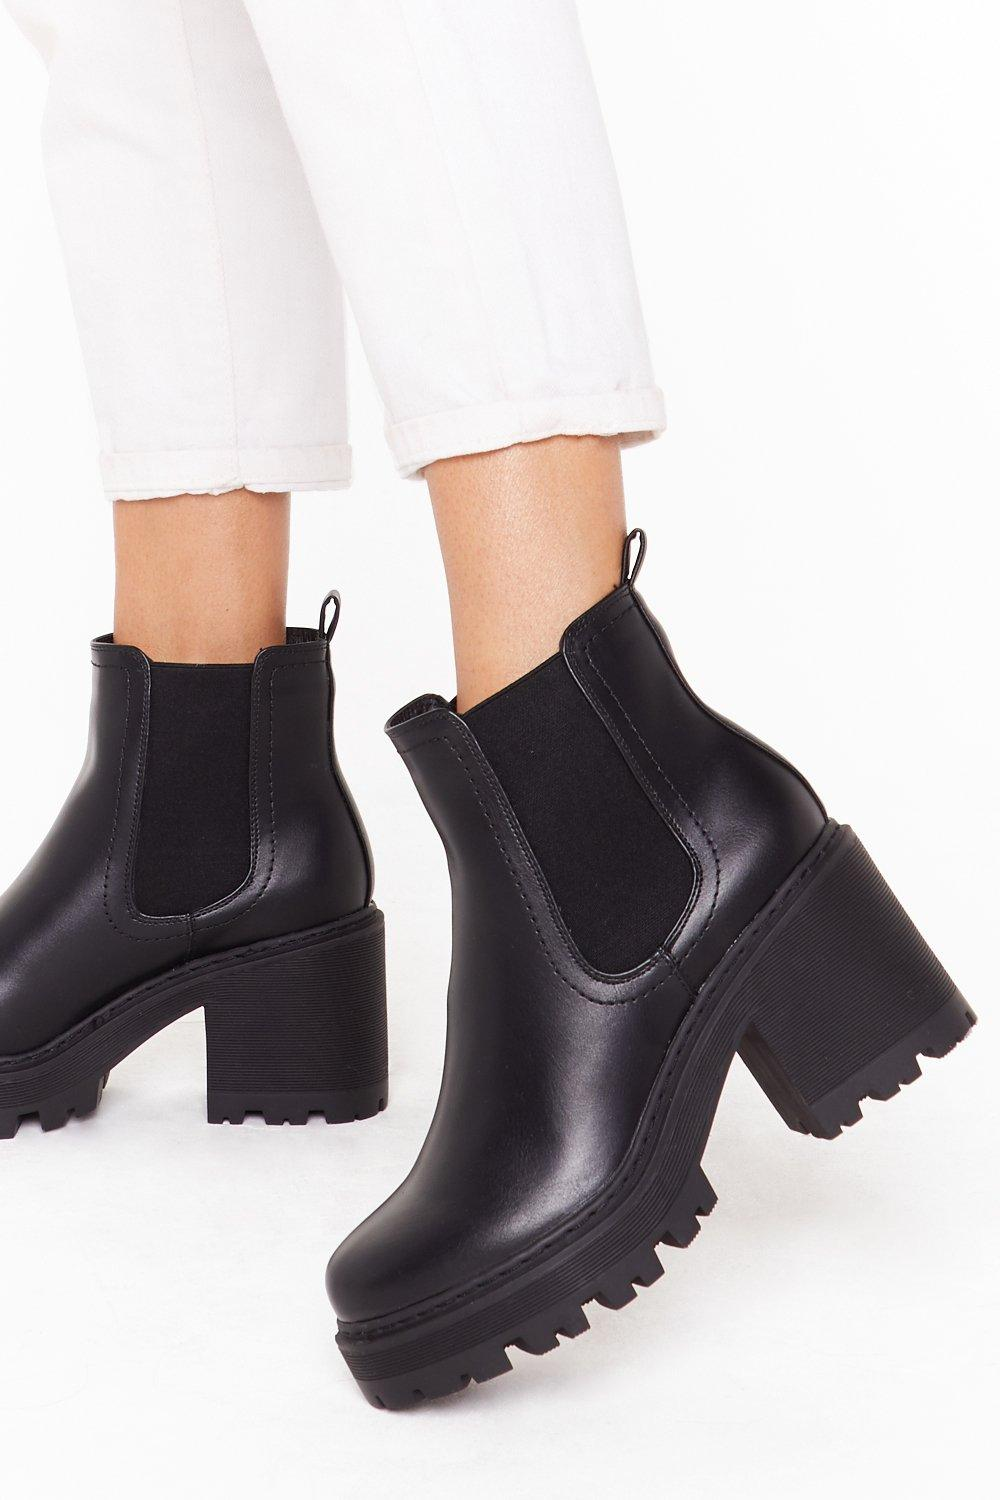 Image of Stand With Us Faux Leather Cleated Boots